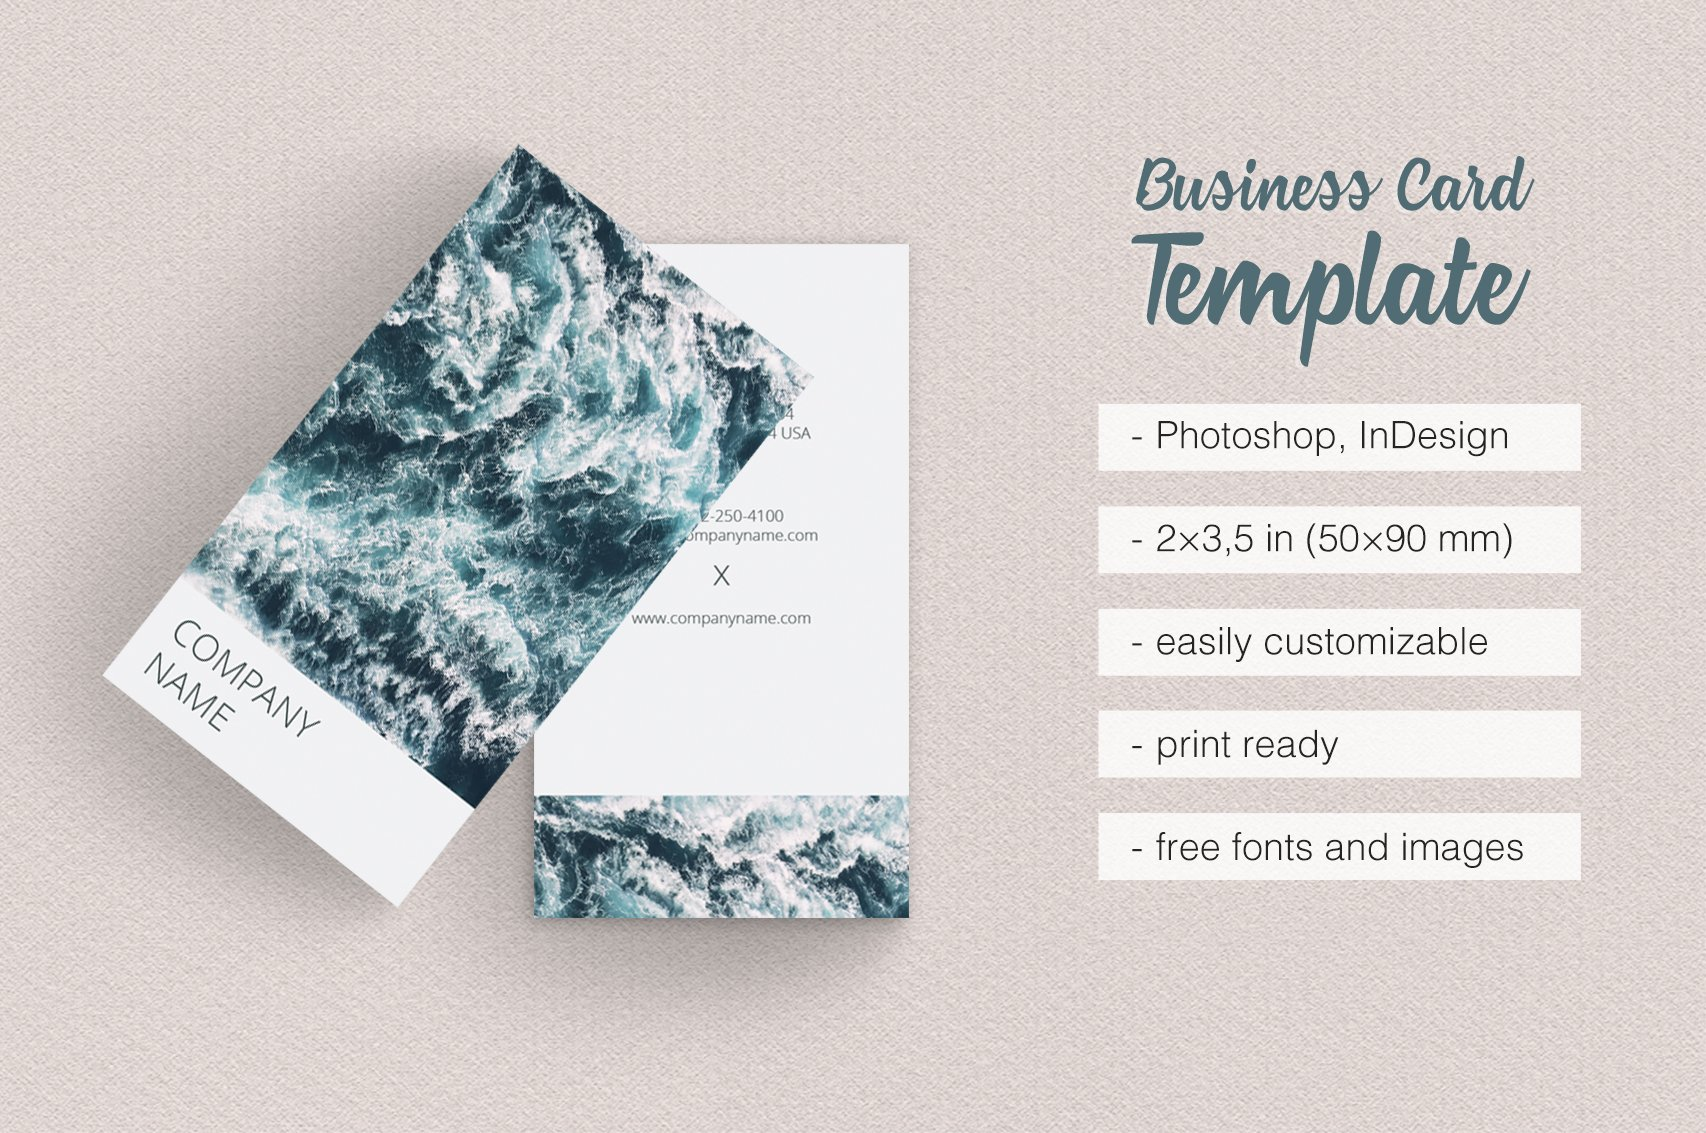 Vertical Photographer Business Card Business Card Templates - Indesign business card template free